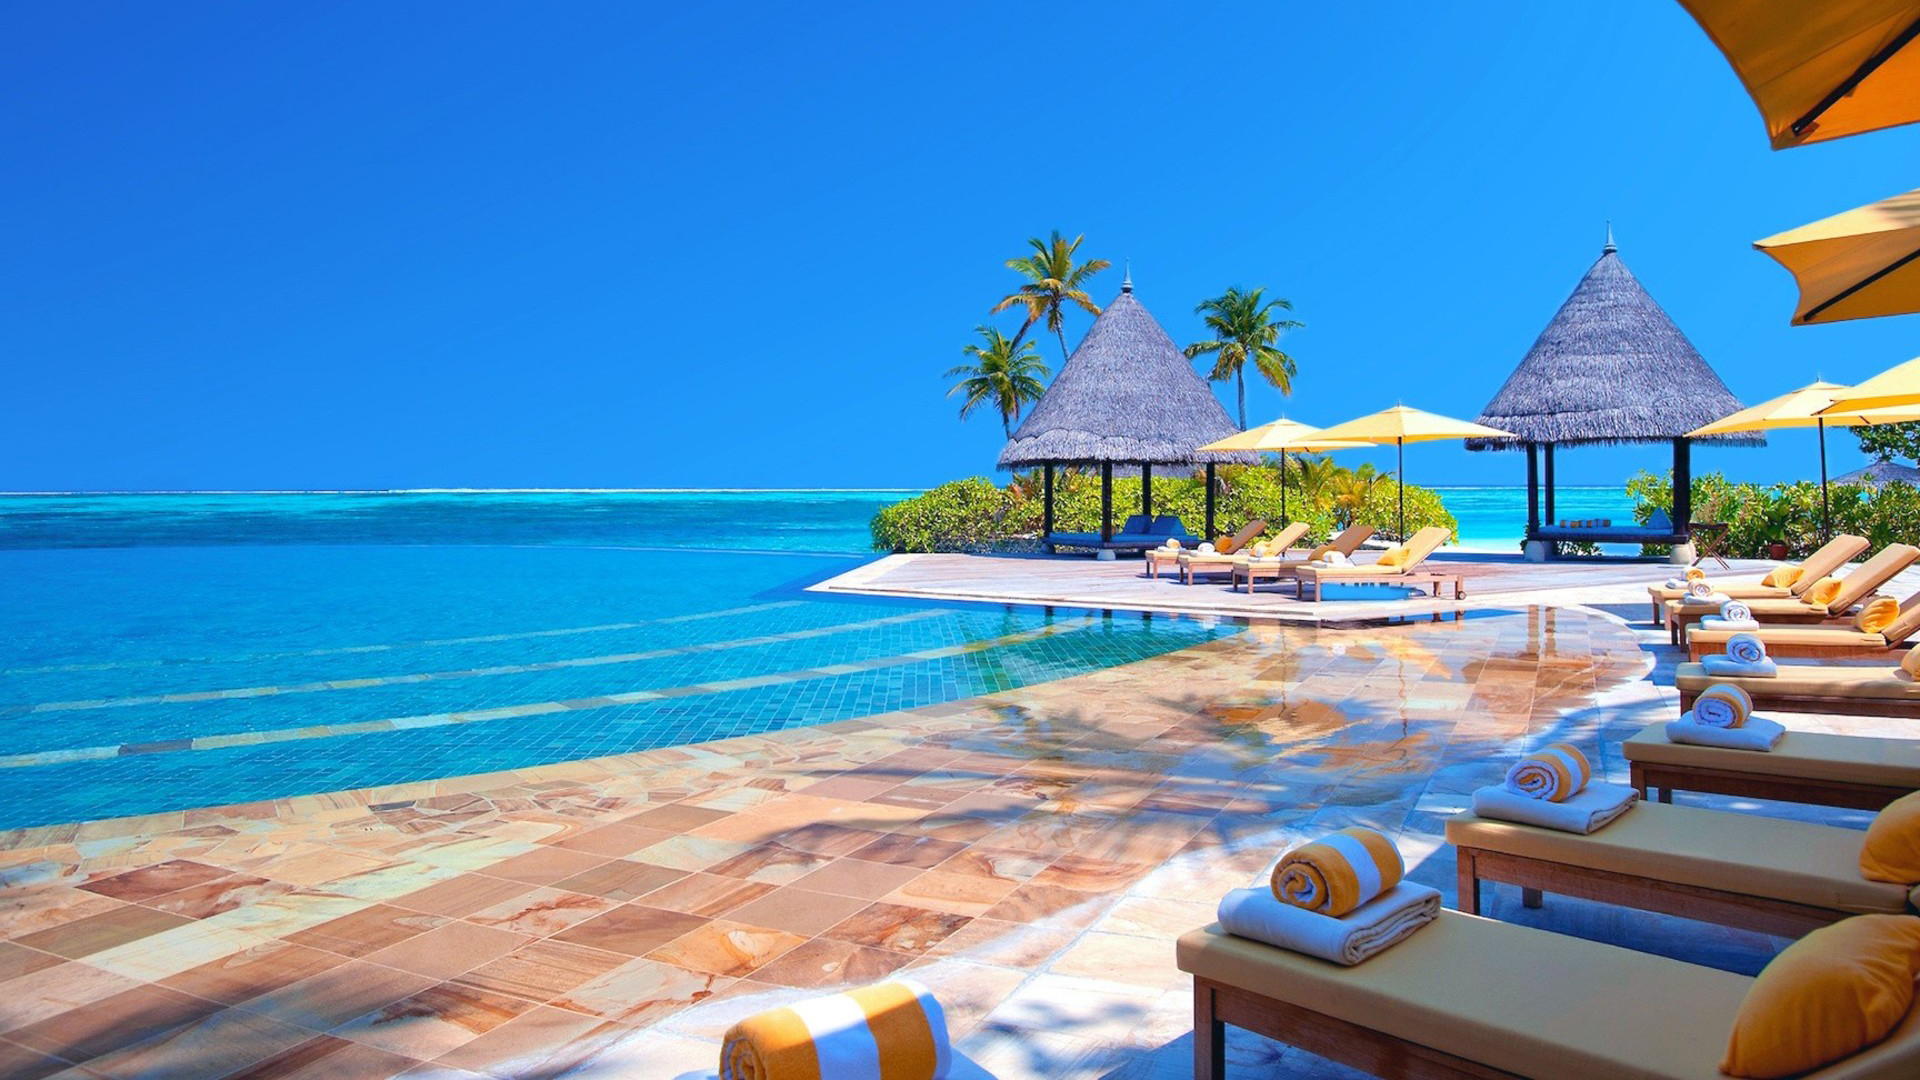 Swimming pool at a tropical resort. Virtual background to use on Zoom, Microsoft Teams, Skype, Google Meet, WebEx or any other compatible app.